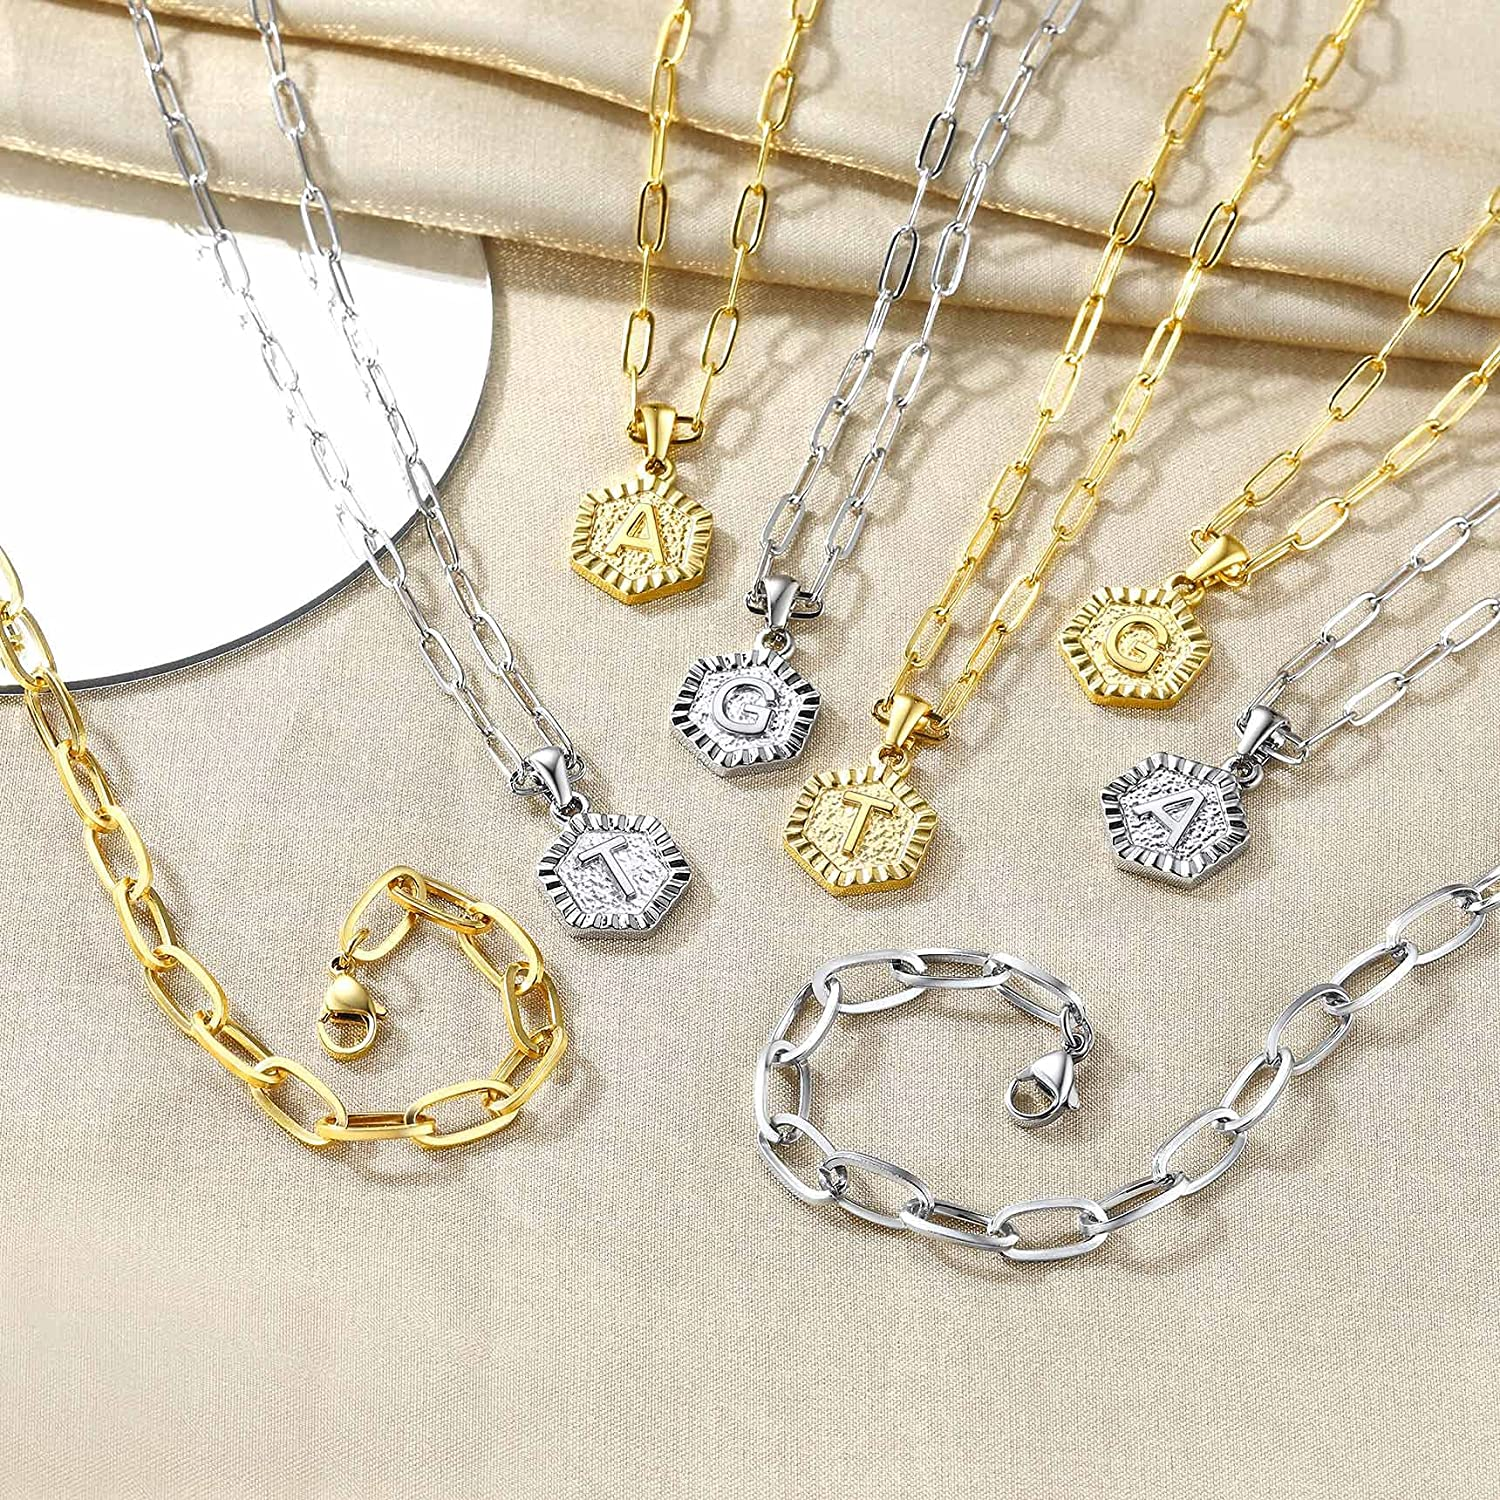 Bestyle Layered Initial Necklaces for Women Girls, Two Hypoallergenic Stainless Steel/ 18K Gold Plated Paperclip Chain Choker Necklaces, Dainty Cute Letter Pendant Statement Jewlery Gift